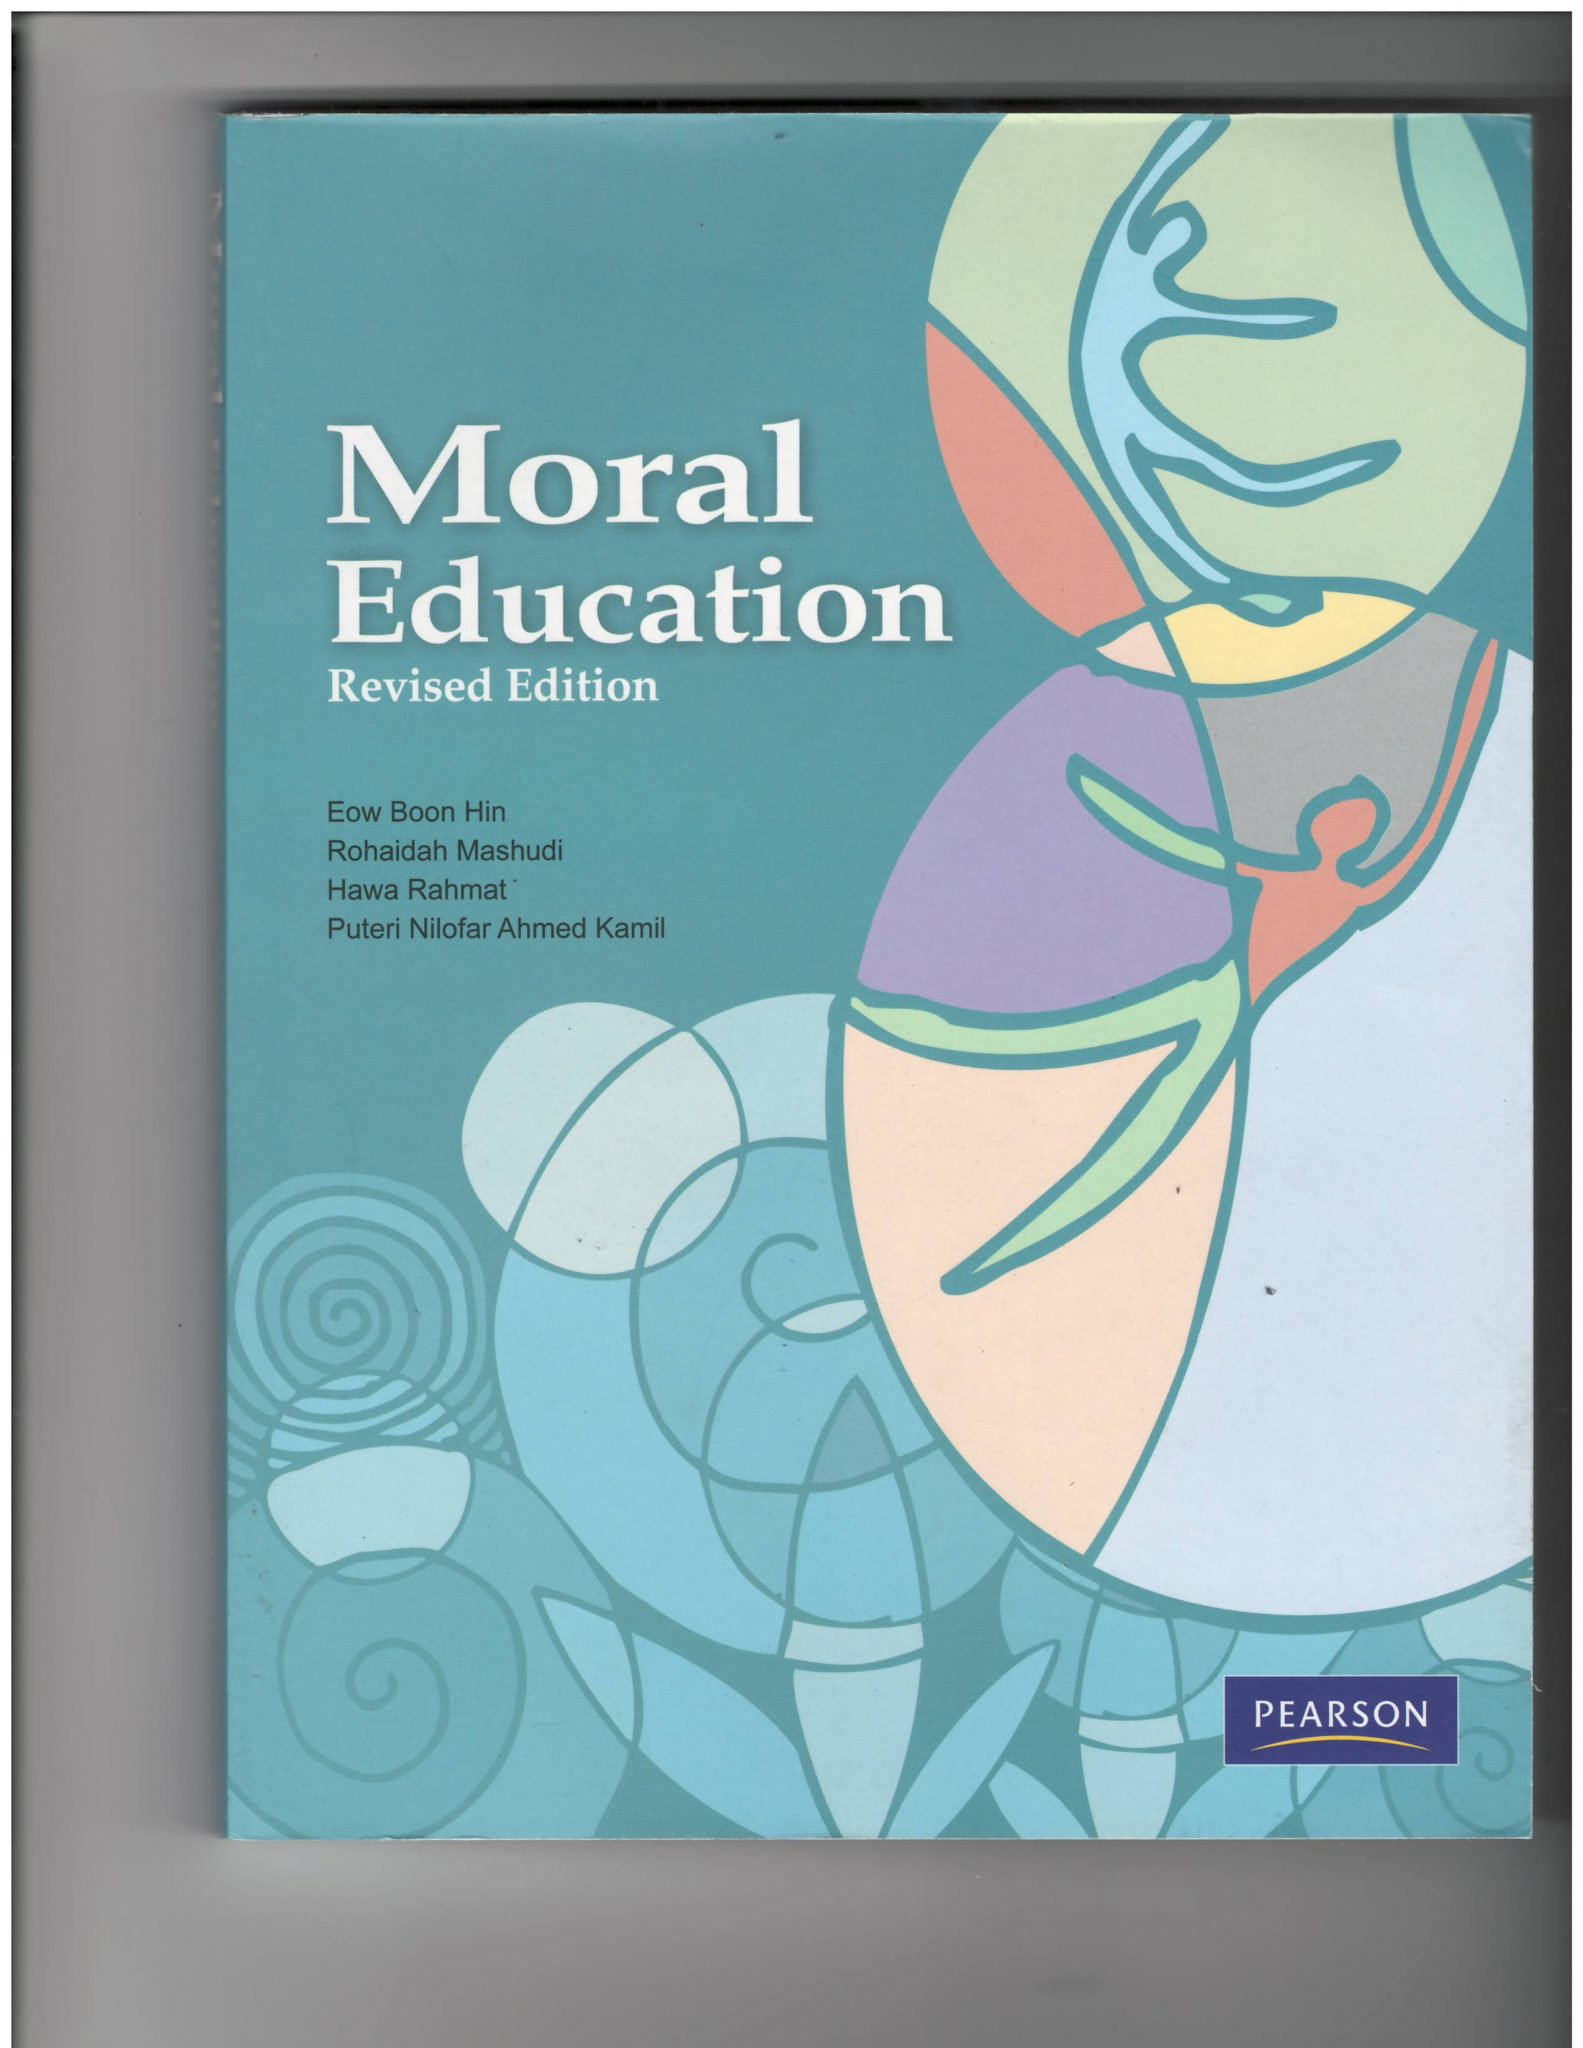 analysis of moral education Moral education: a review of constructivist theory and research theo dawson the term,  moral education, and to a succession of educational interventions  kohlberg has been criticized for neglecting the analysis of content, and other researchers have focused on the content of moral interviews, with particular attention to context-specific.